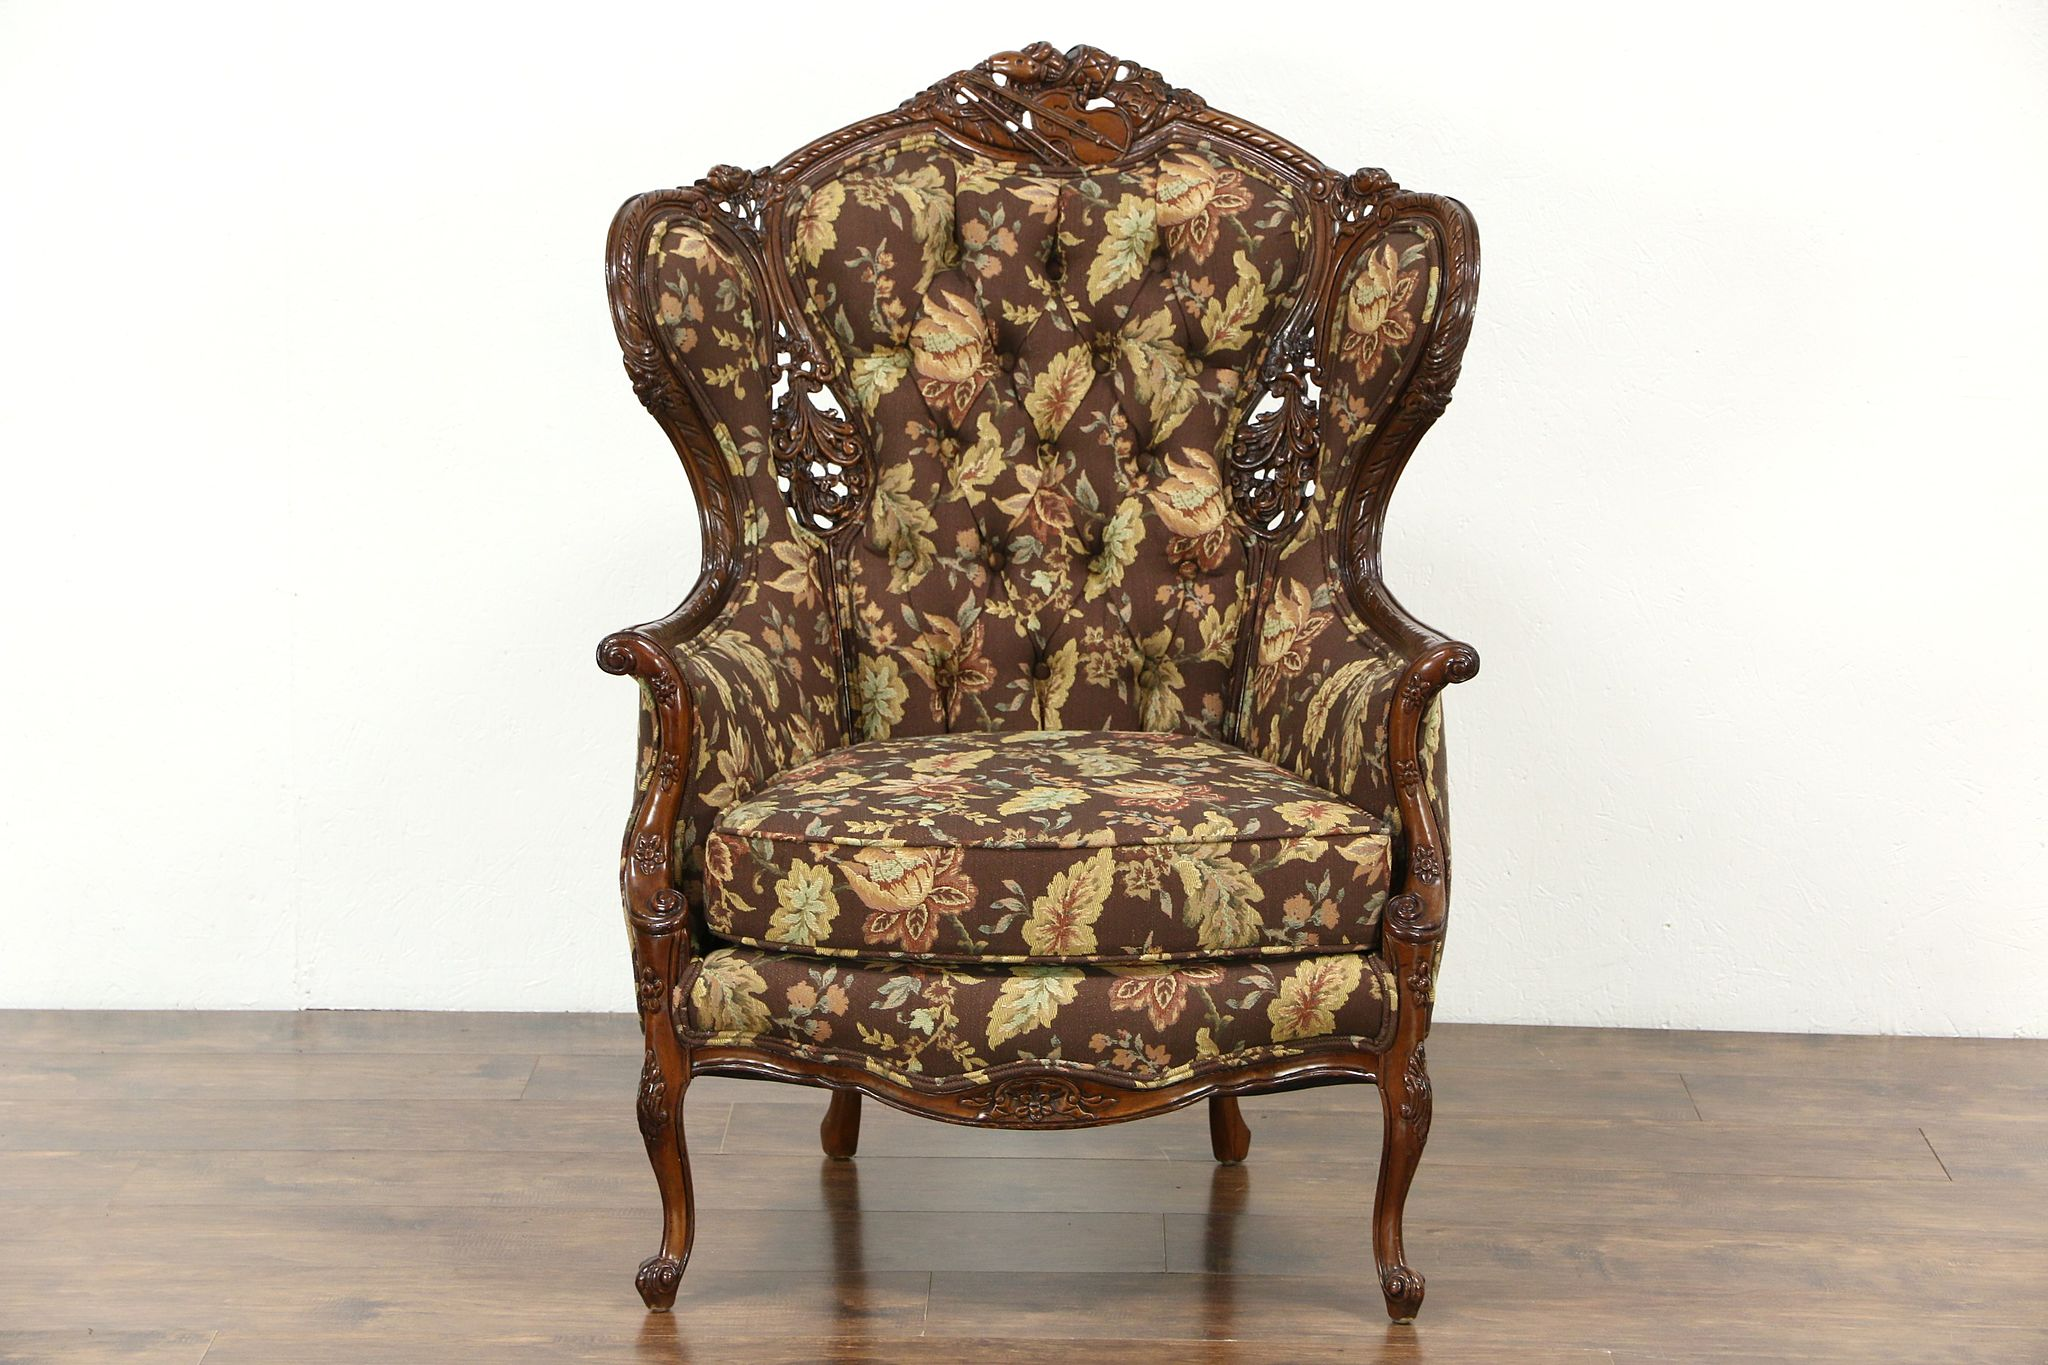 Antique wing chair - Music Room 1940 S Vintage Wing Chair Carved Violin Drum New Upholstery